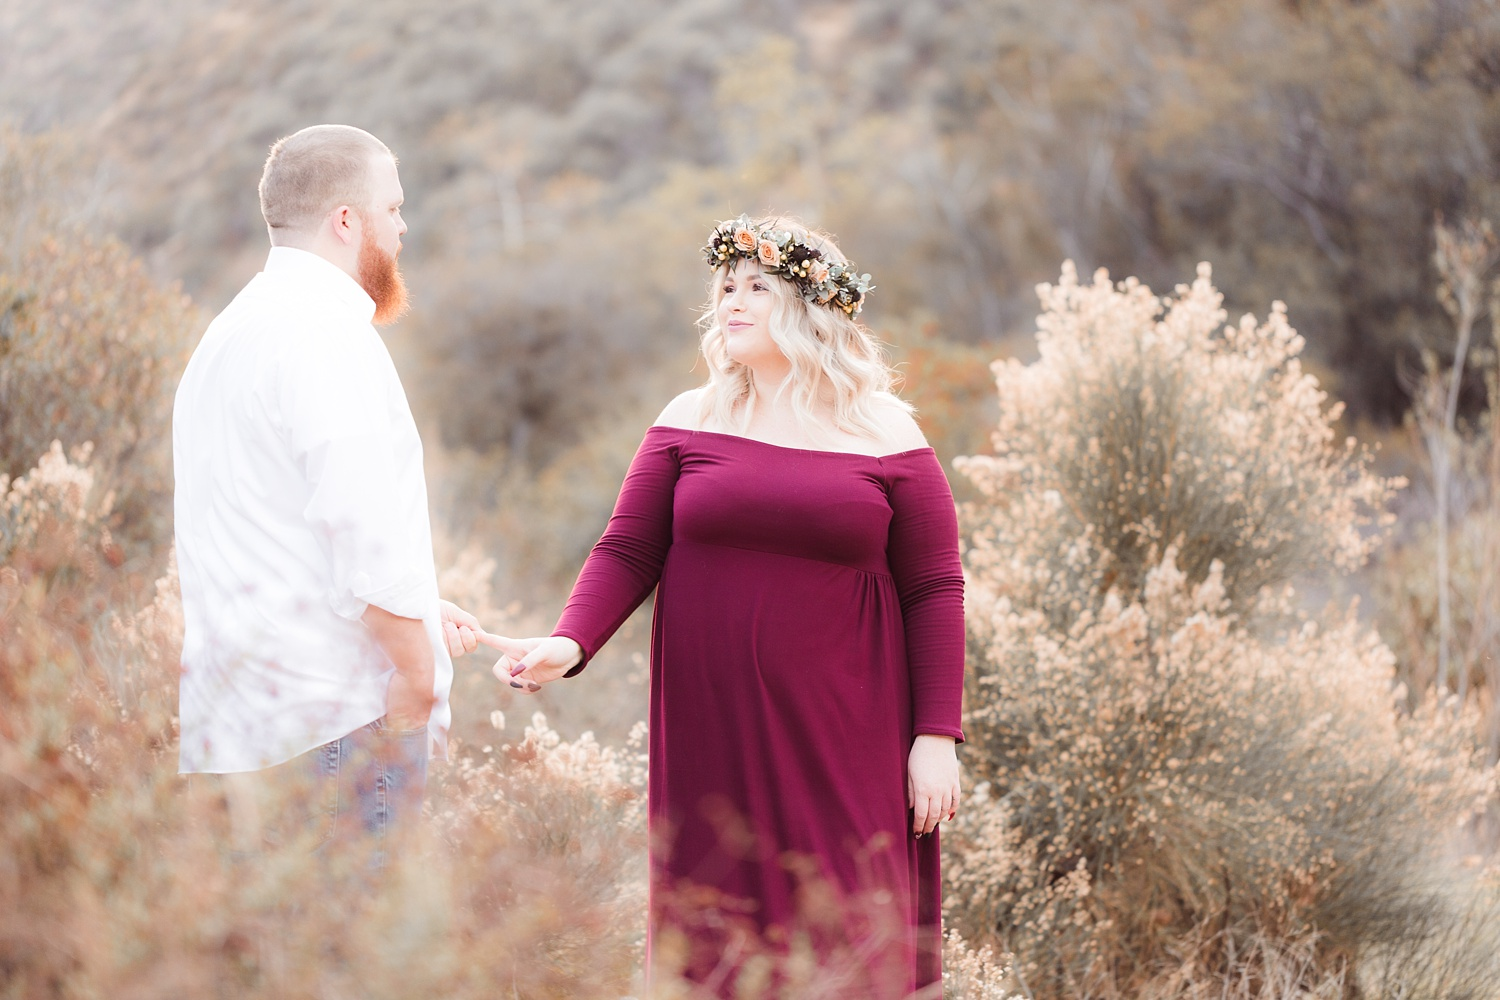 Lindsey Outdoor Maternity Shoot Corona California_0010.jpg